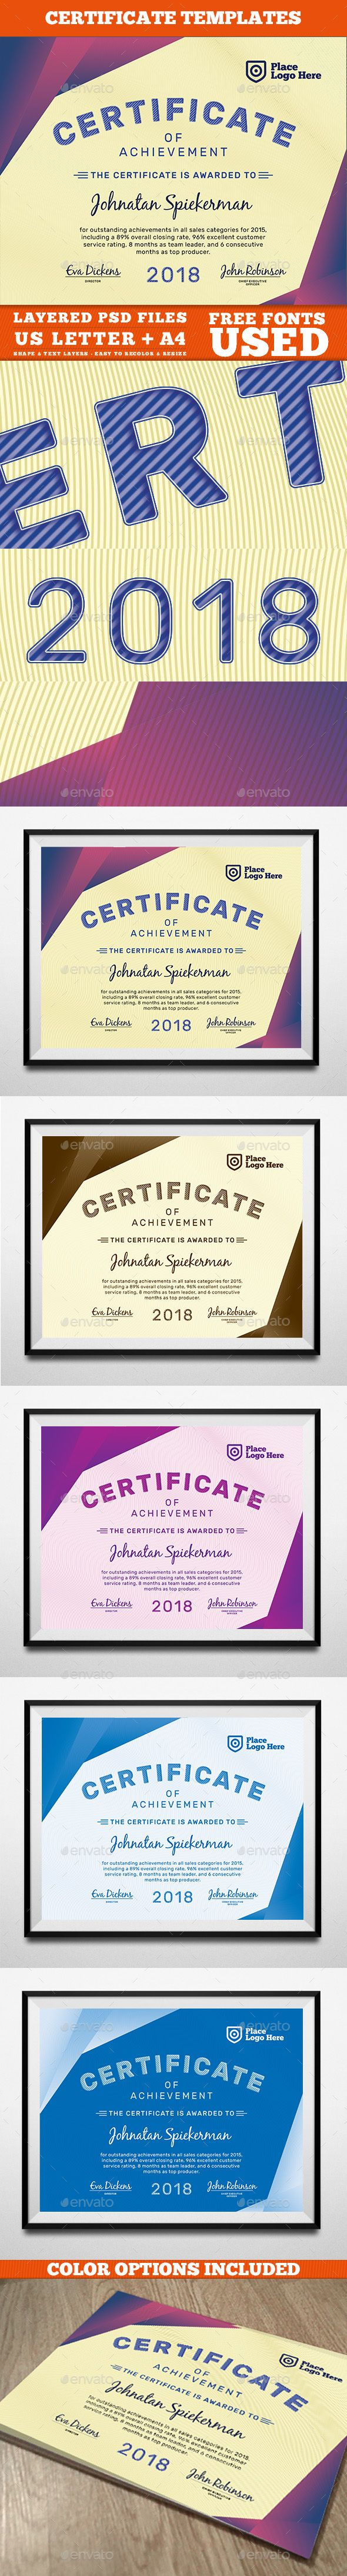 #Certificate Template - Certificates #Stationery